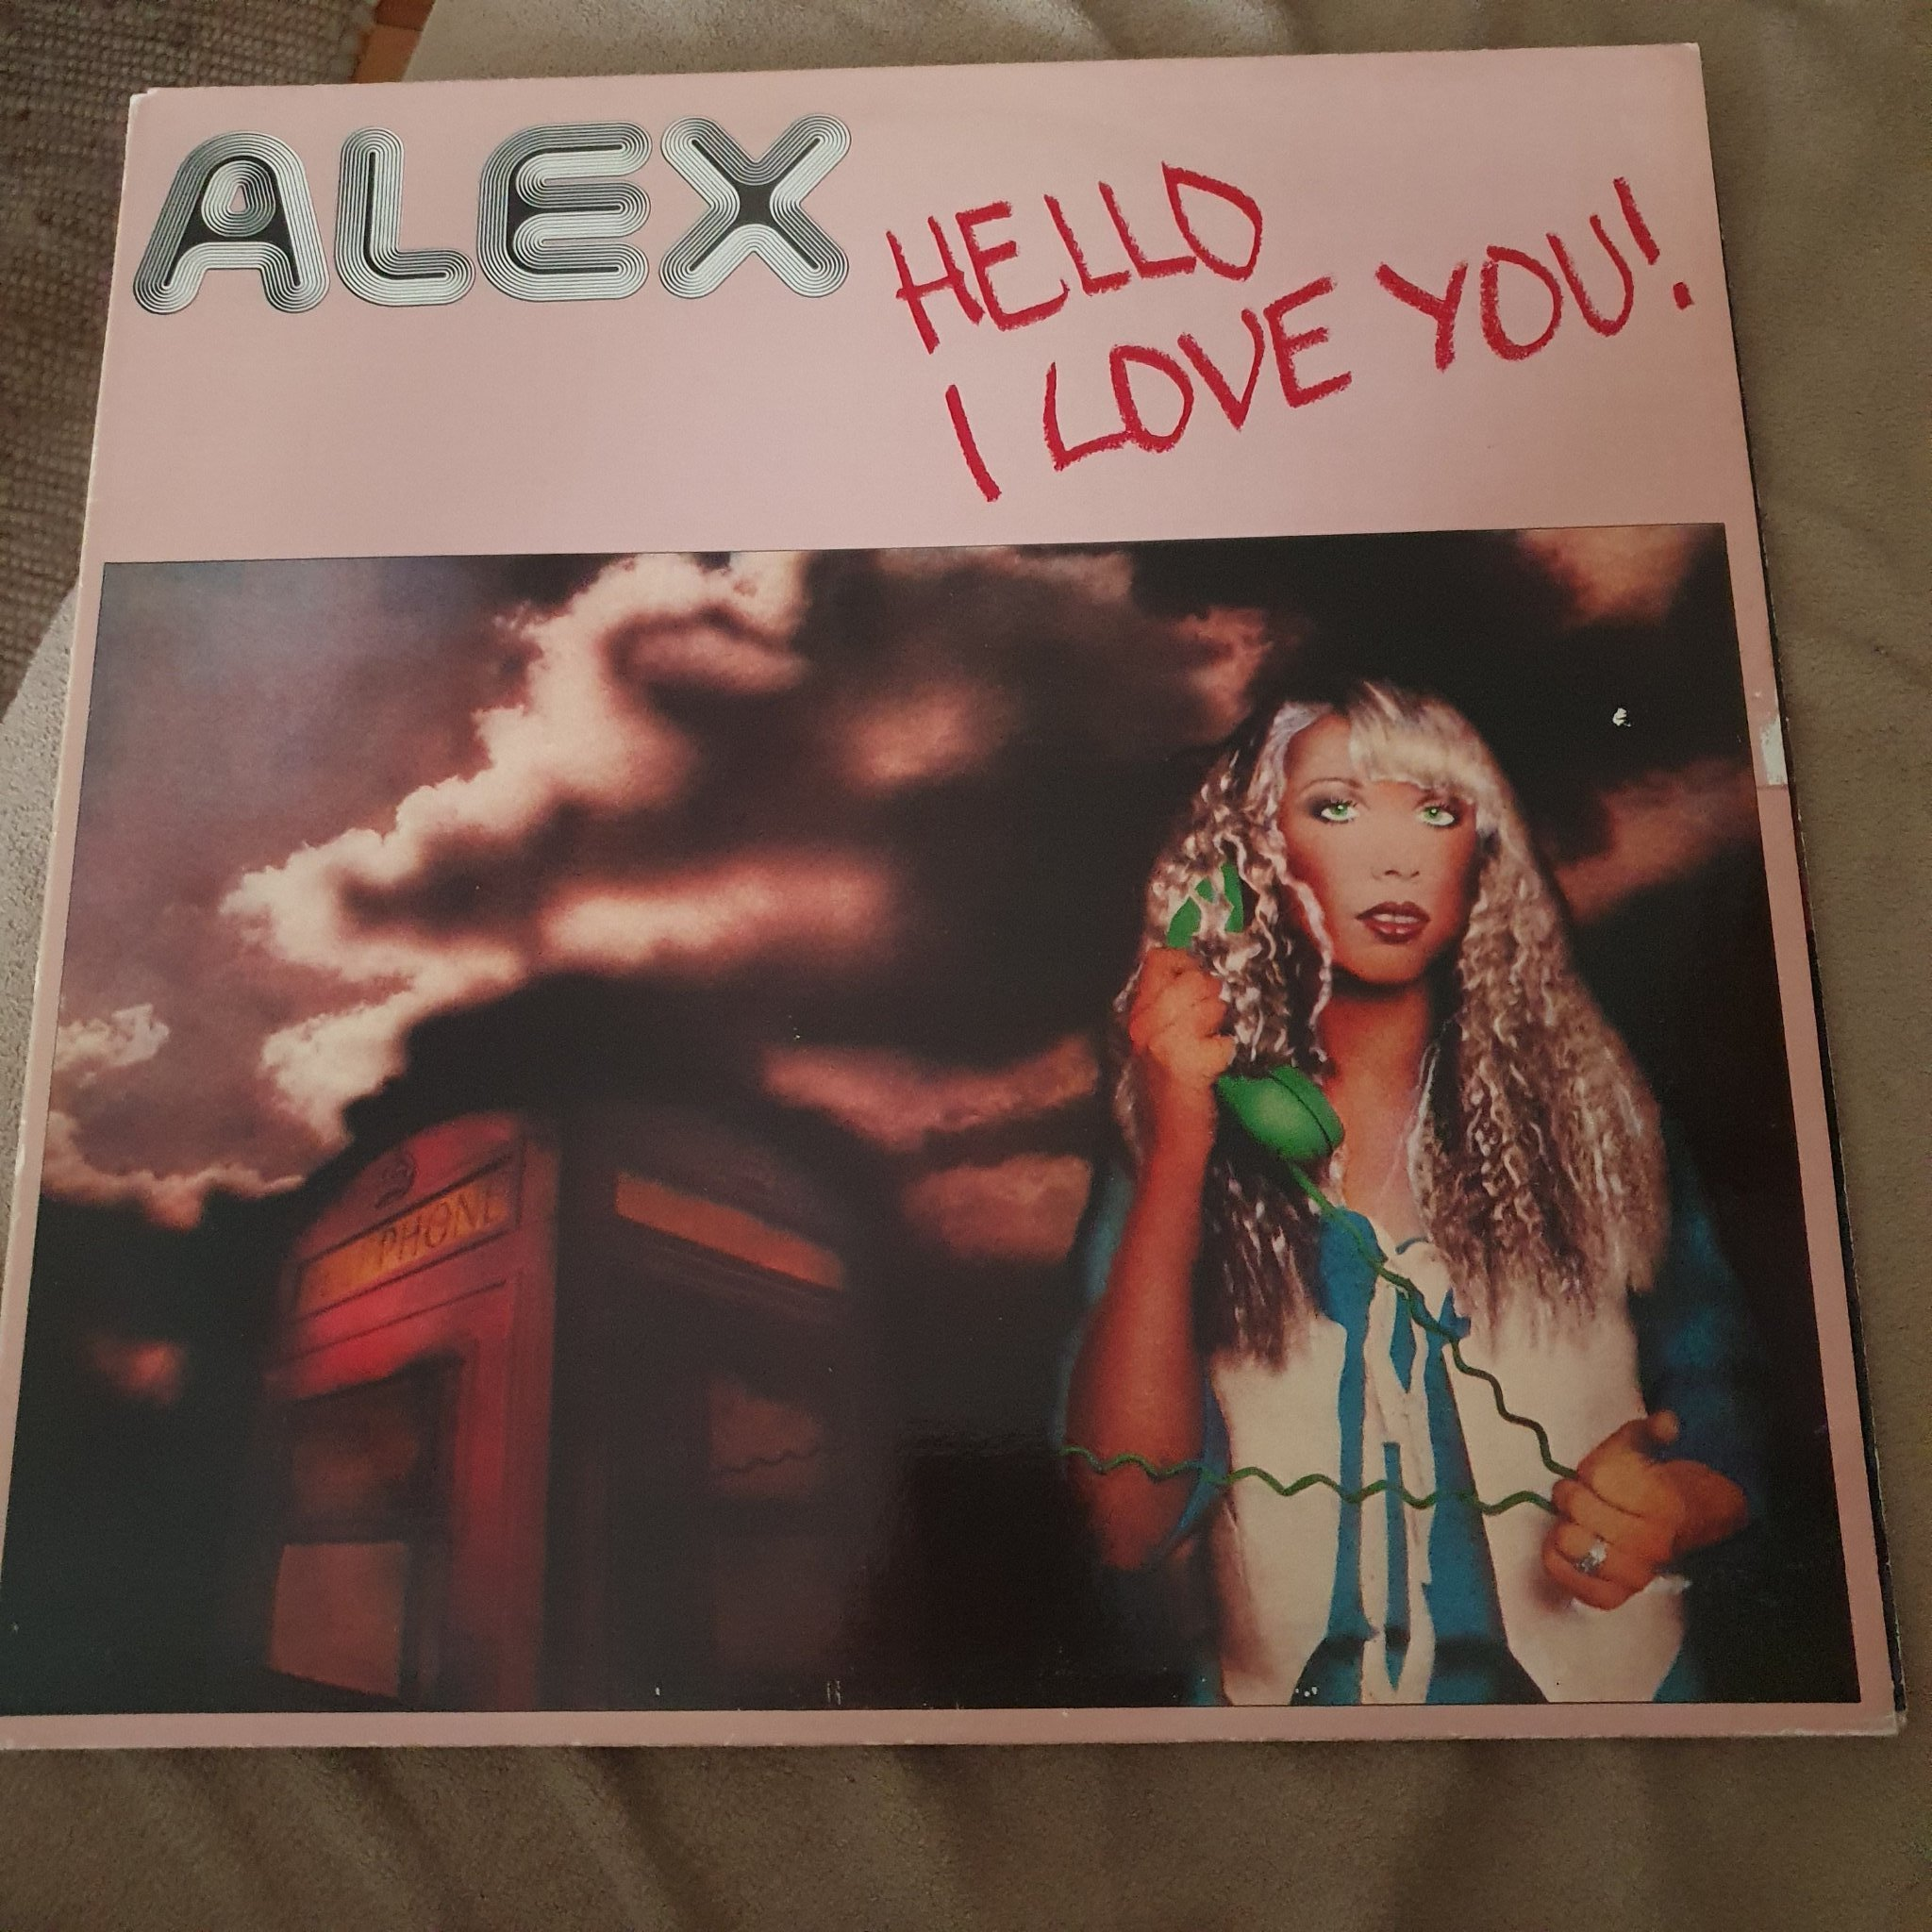 Alex : Hello I love you !